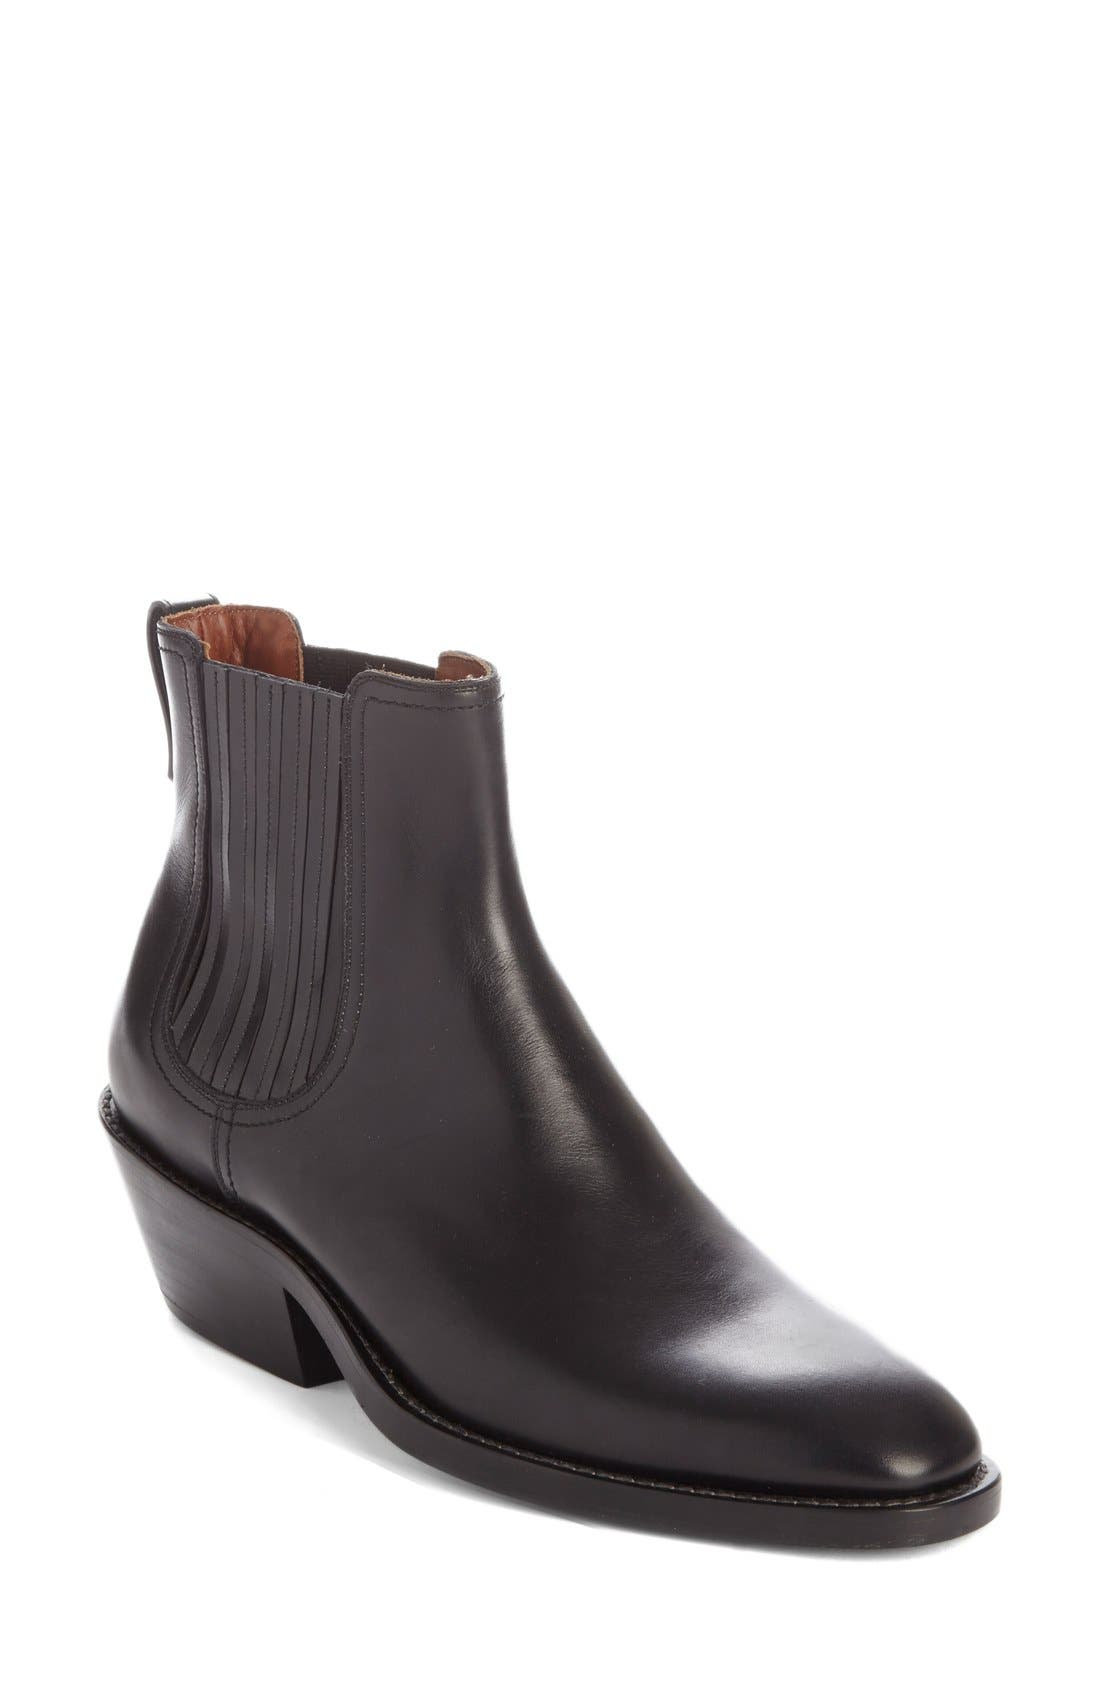 GIVENCHY 'Rider' Chelsea Boot